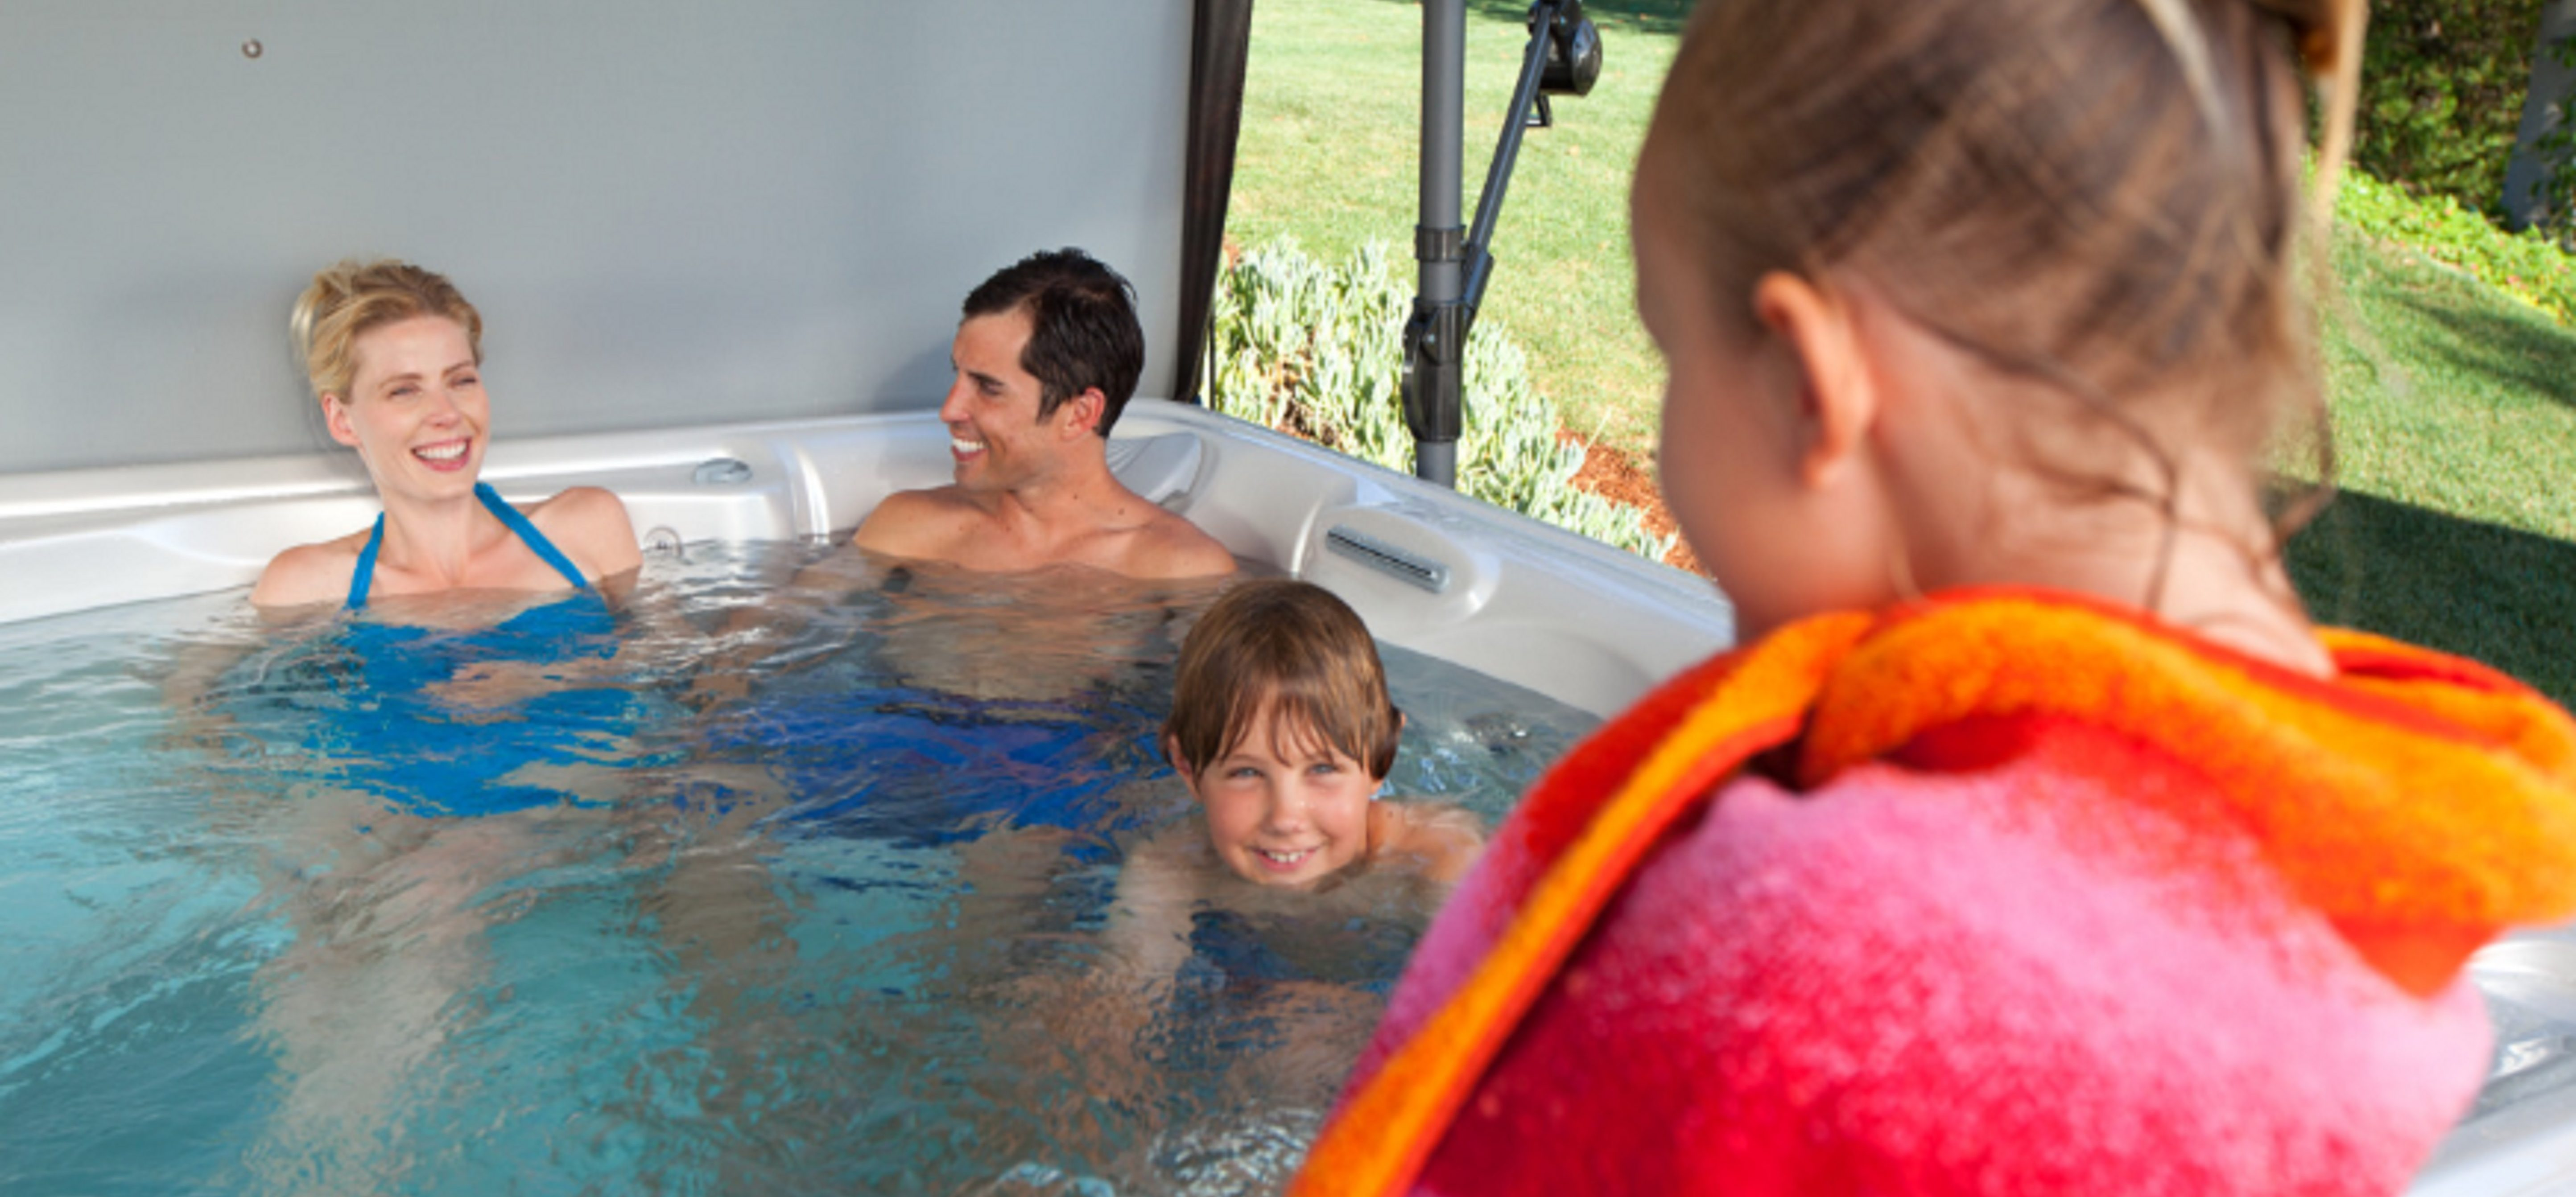 Why Hot Tubs are Great for Families with Kids